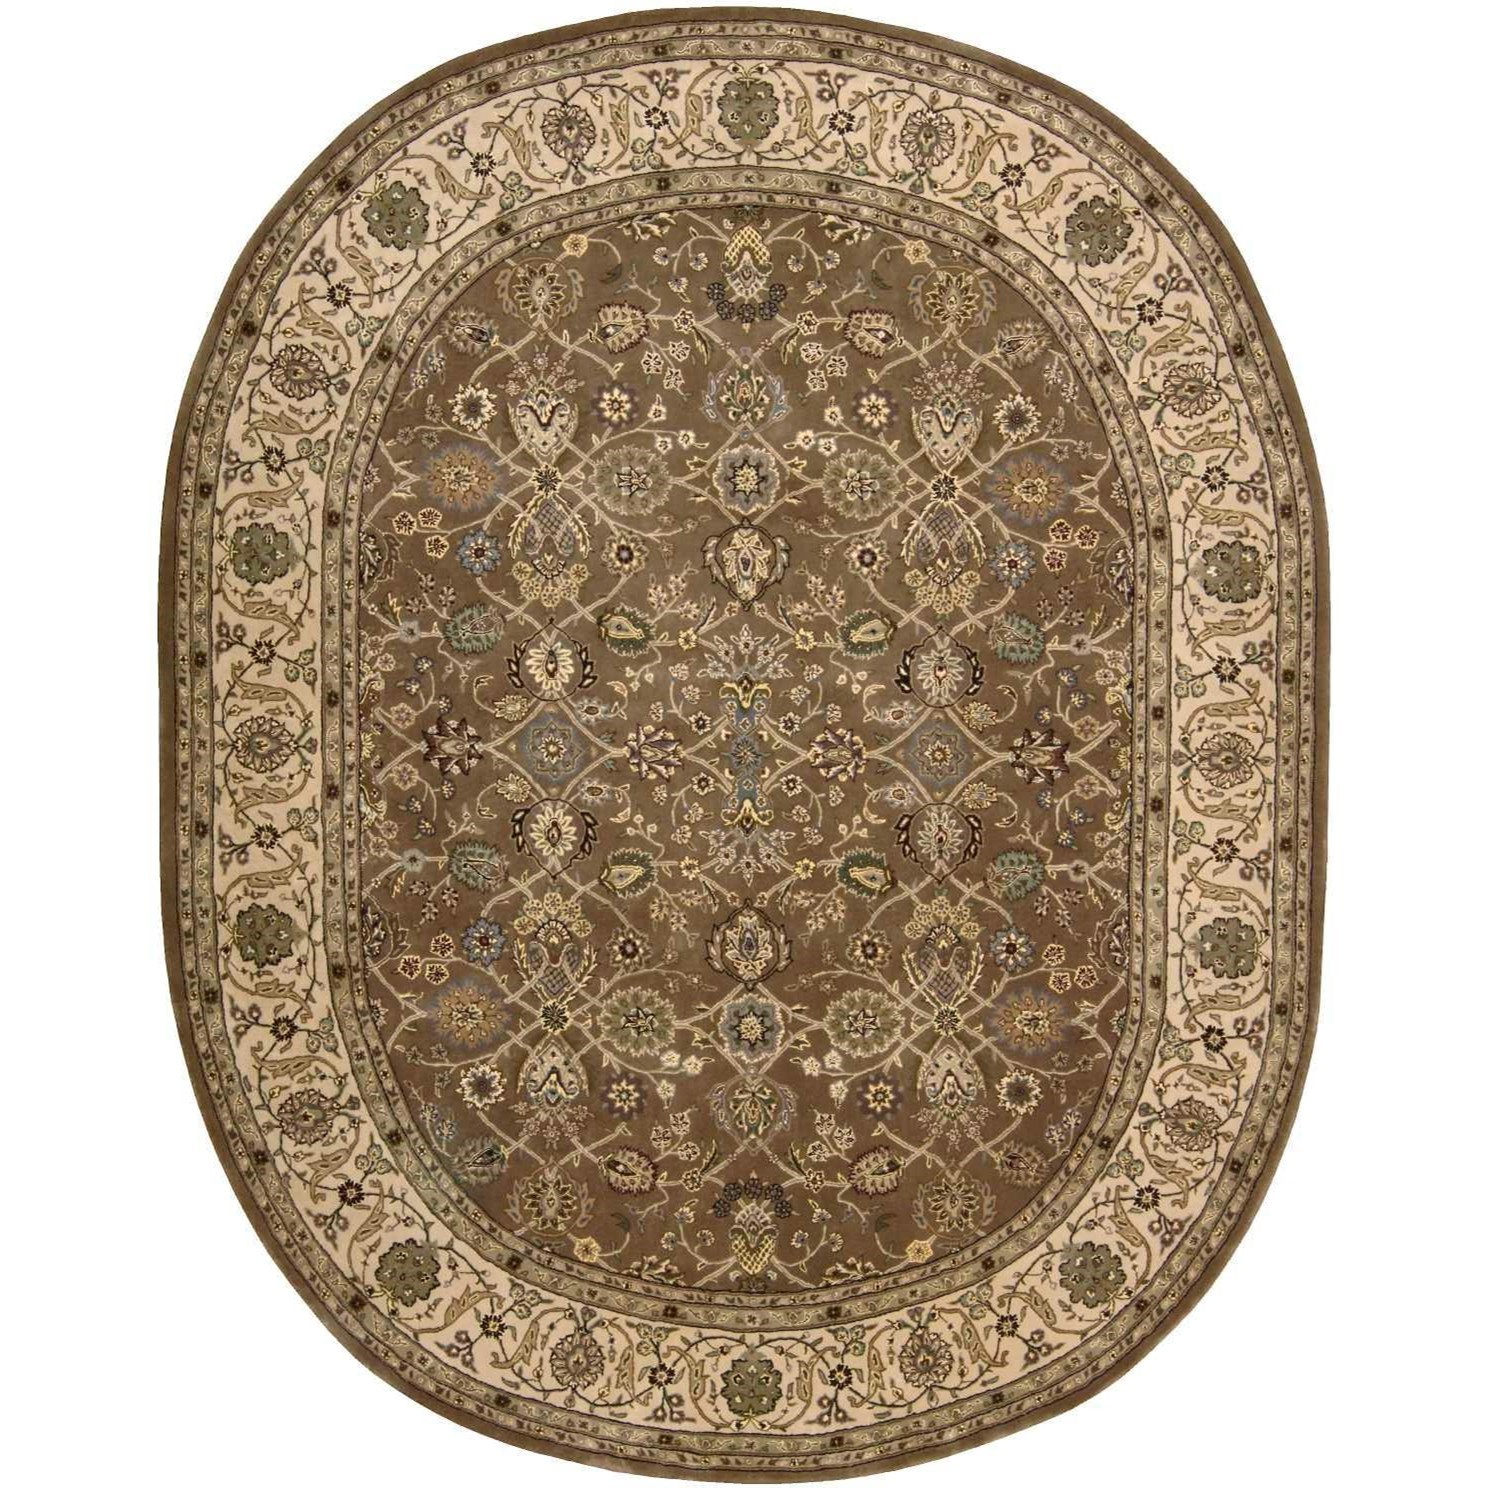 Nourison 2000 2000 2091 Mushroom 10' Oval  Area Rug by Nourison at Home Collections Furniture